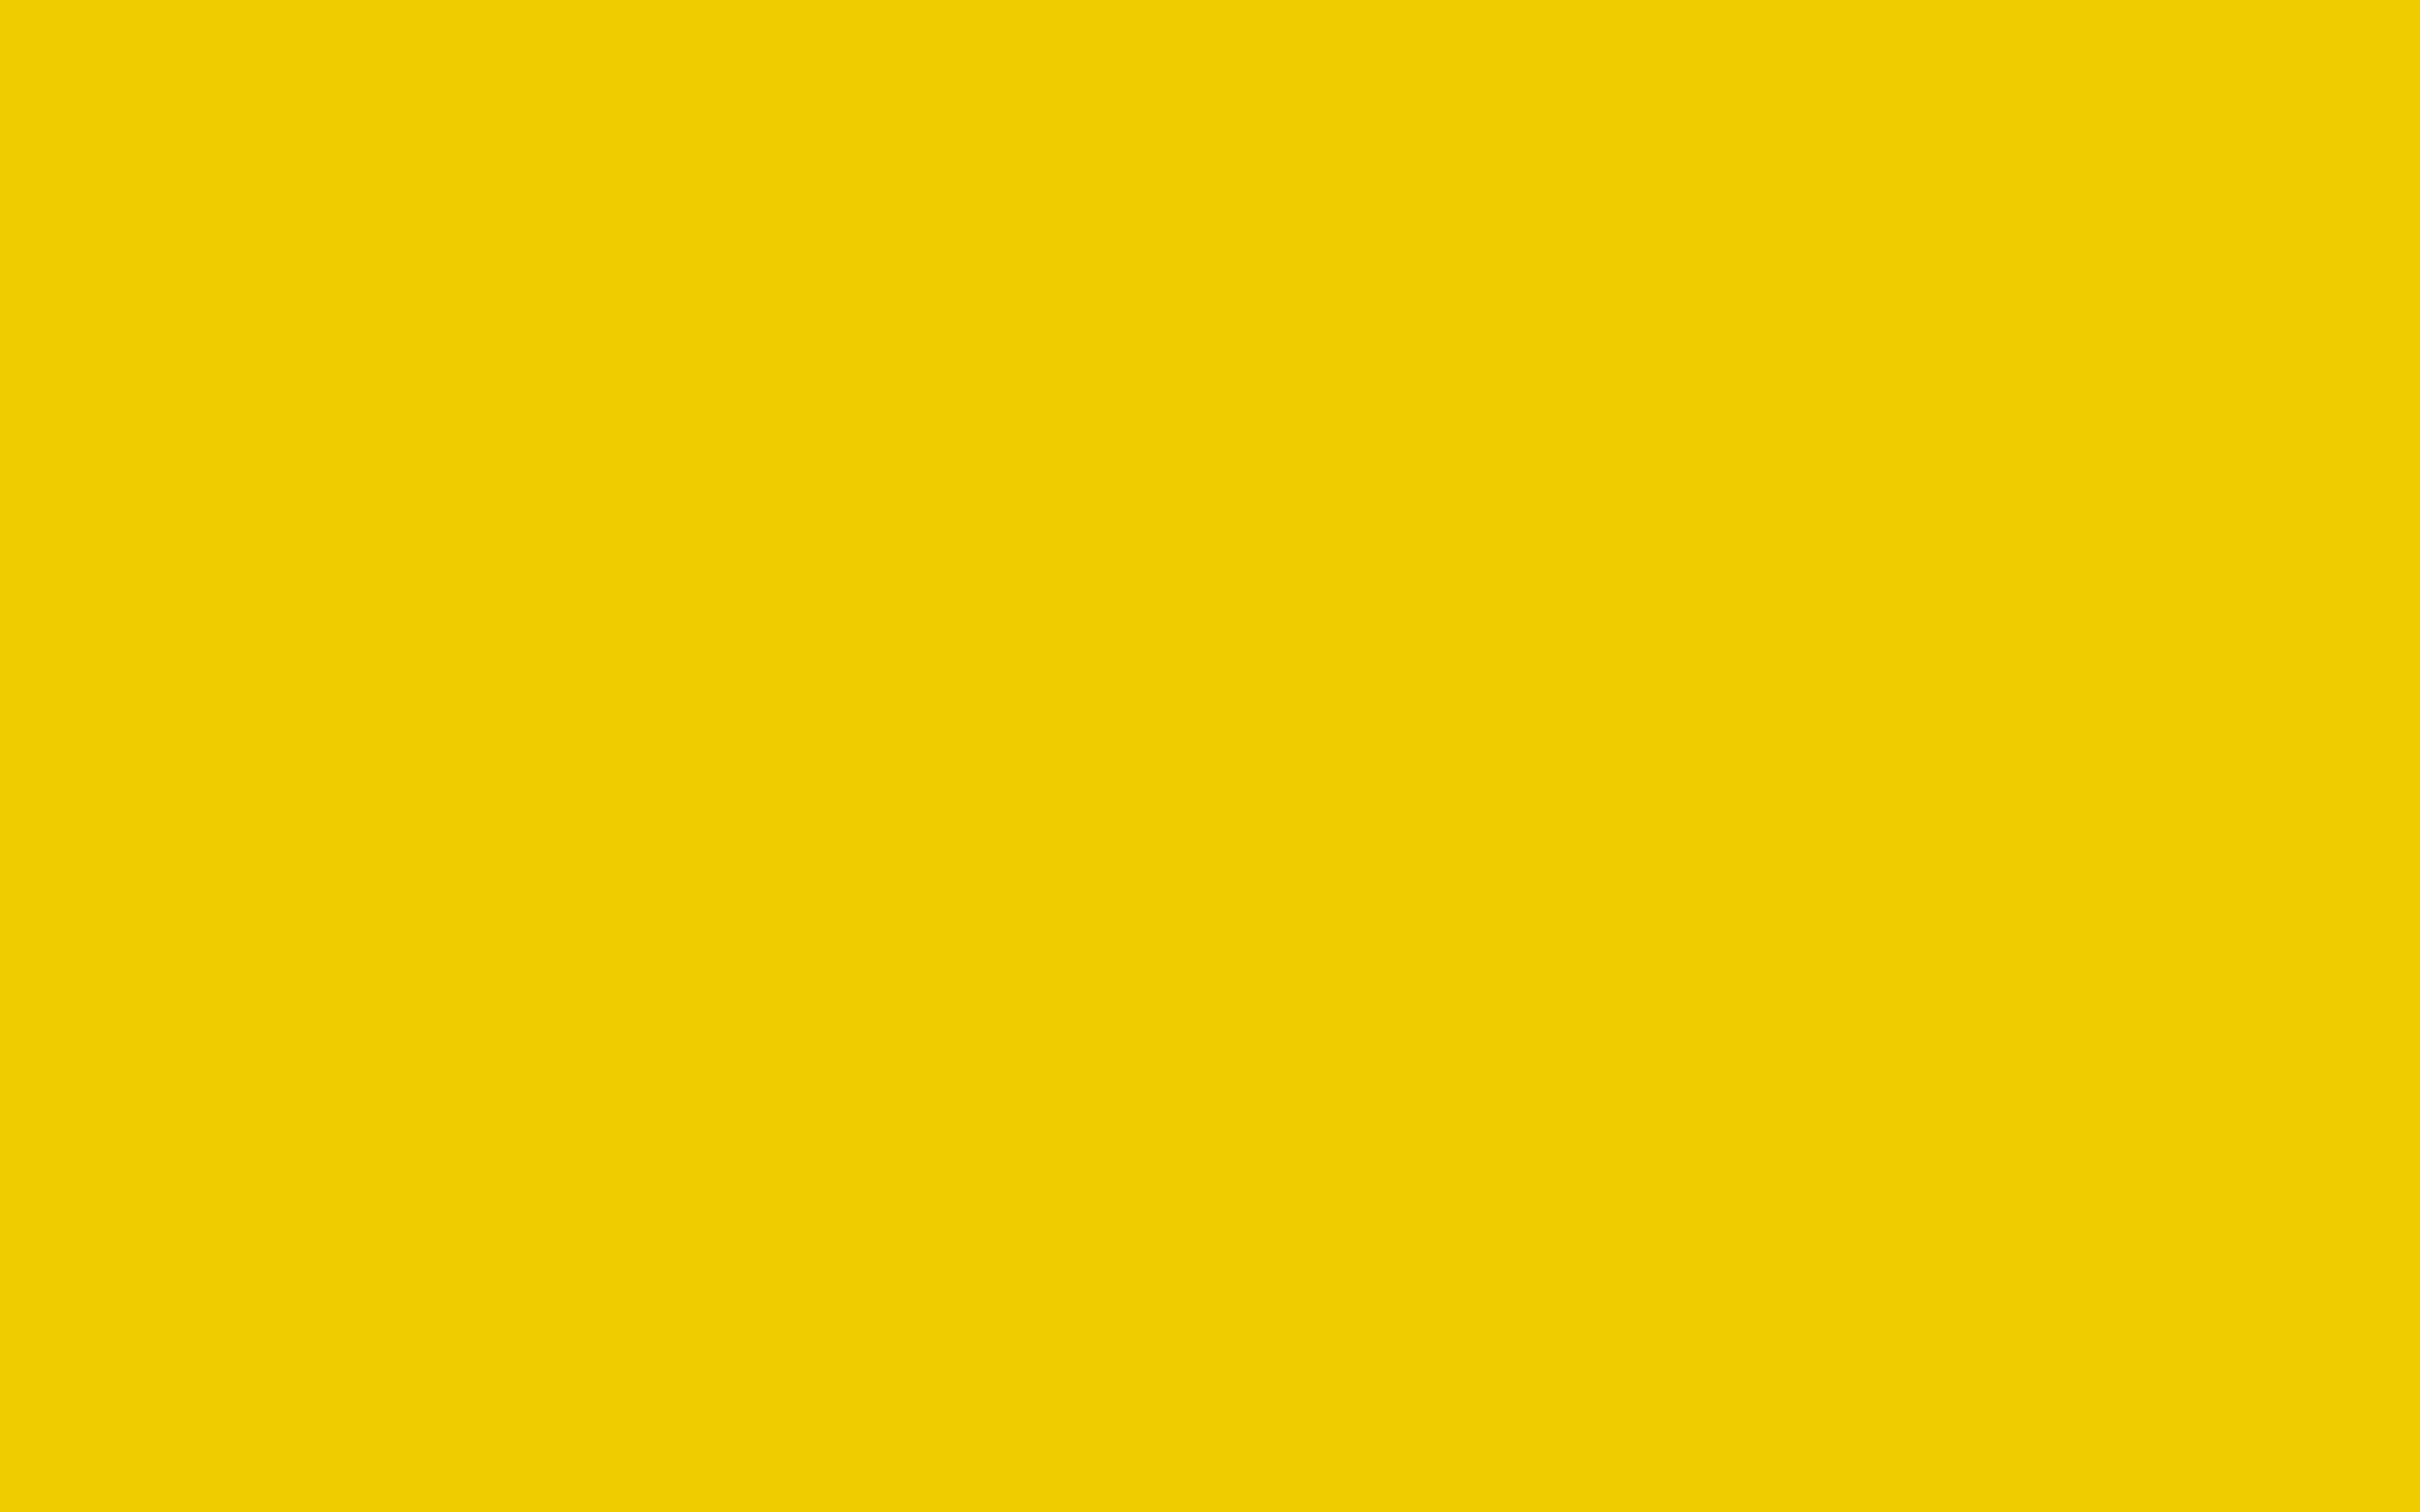 2880x1800 Yellow Munsell Solid Color Background